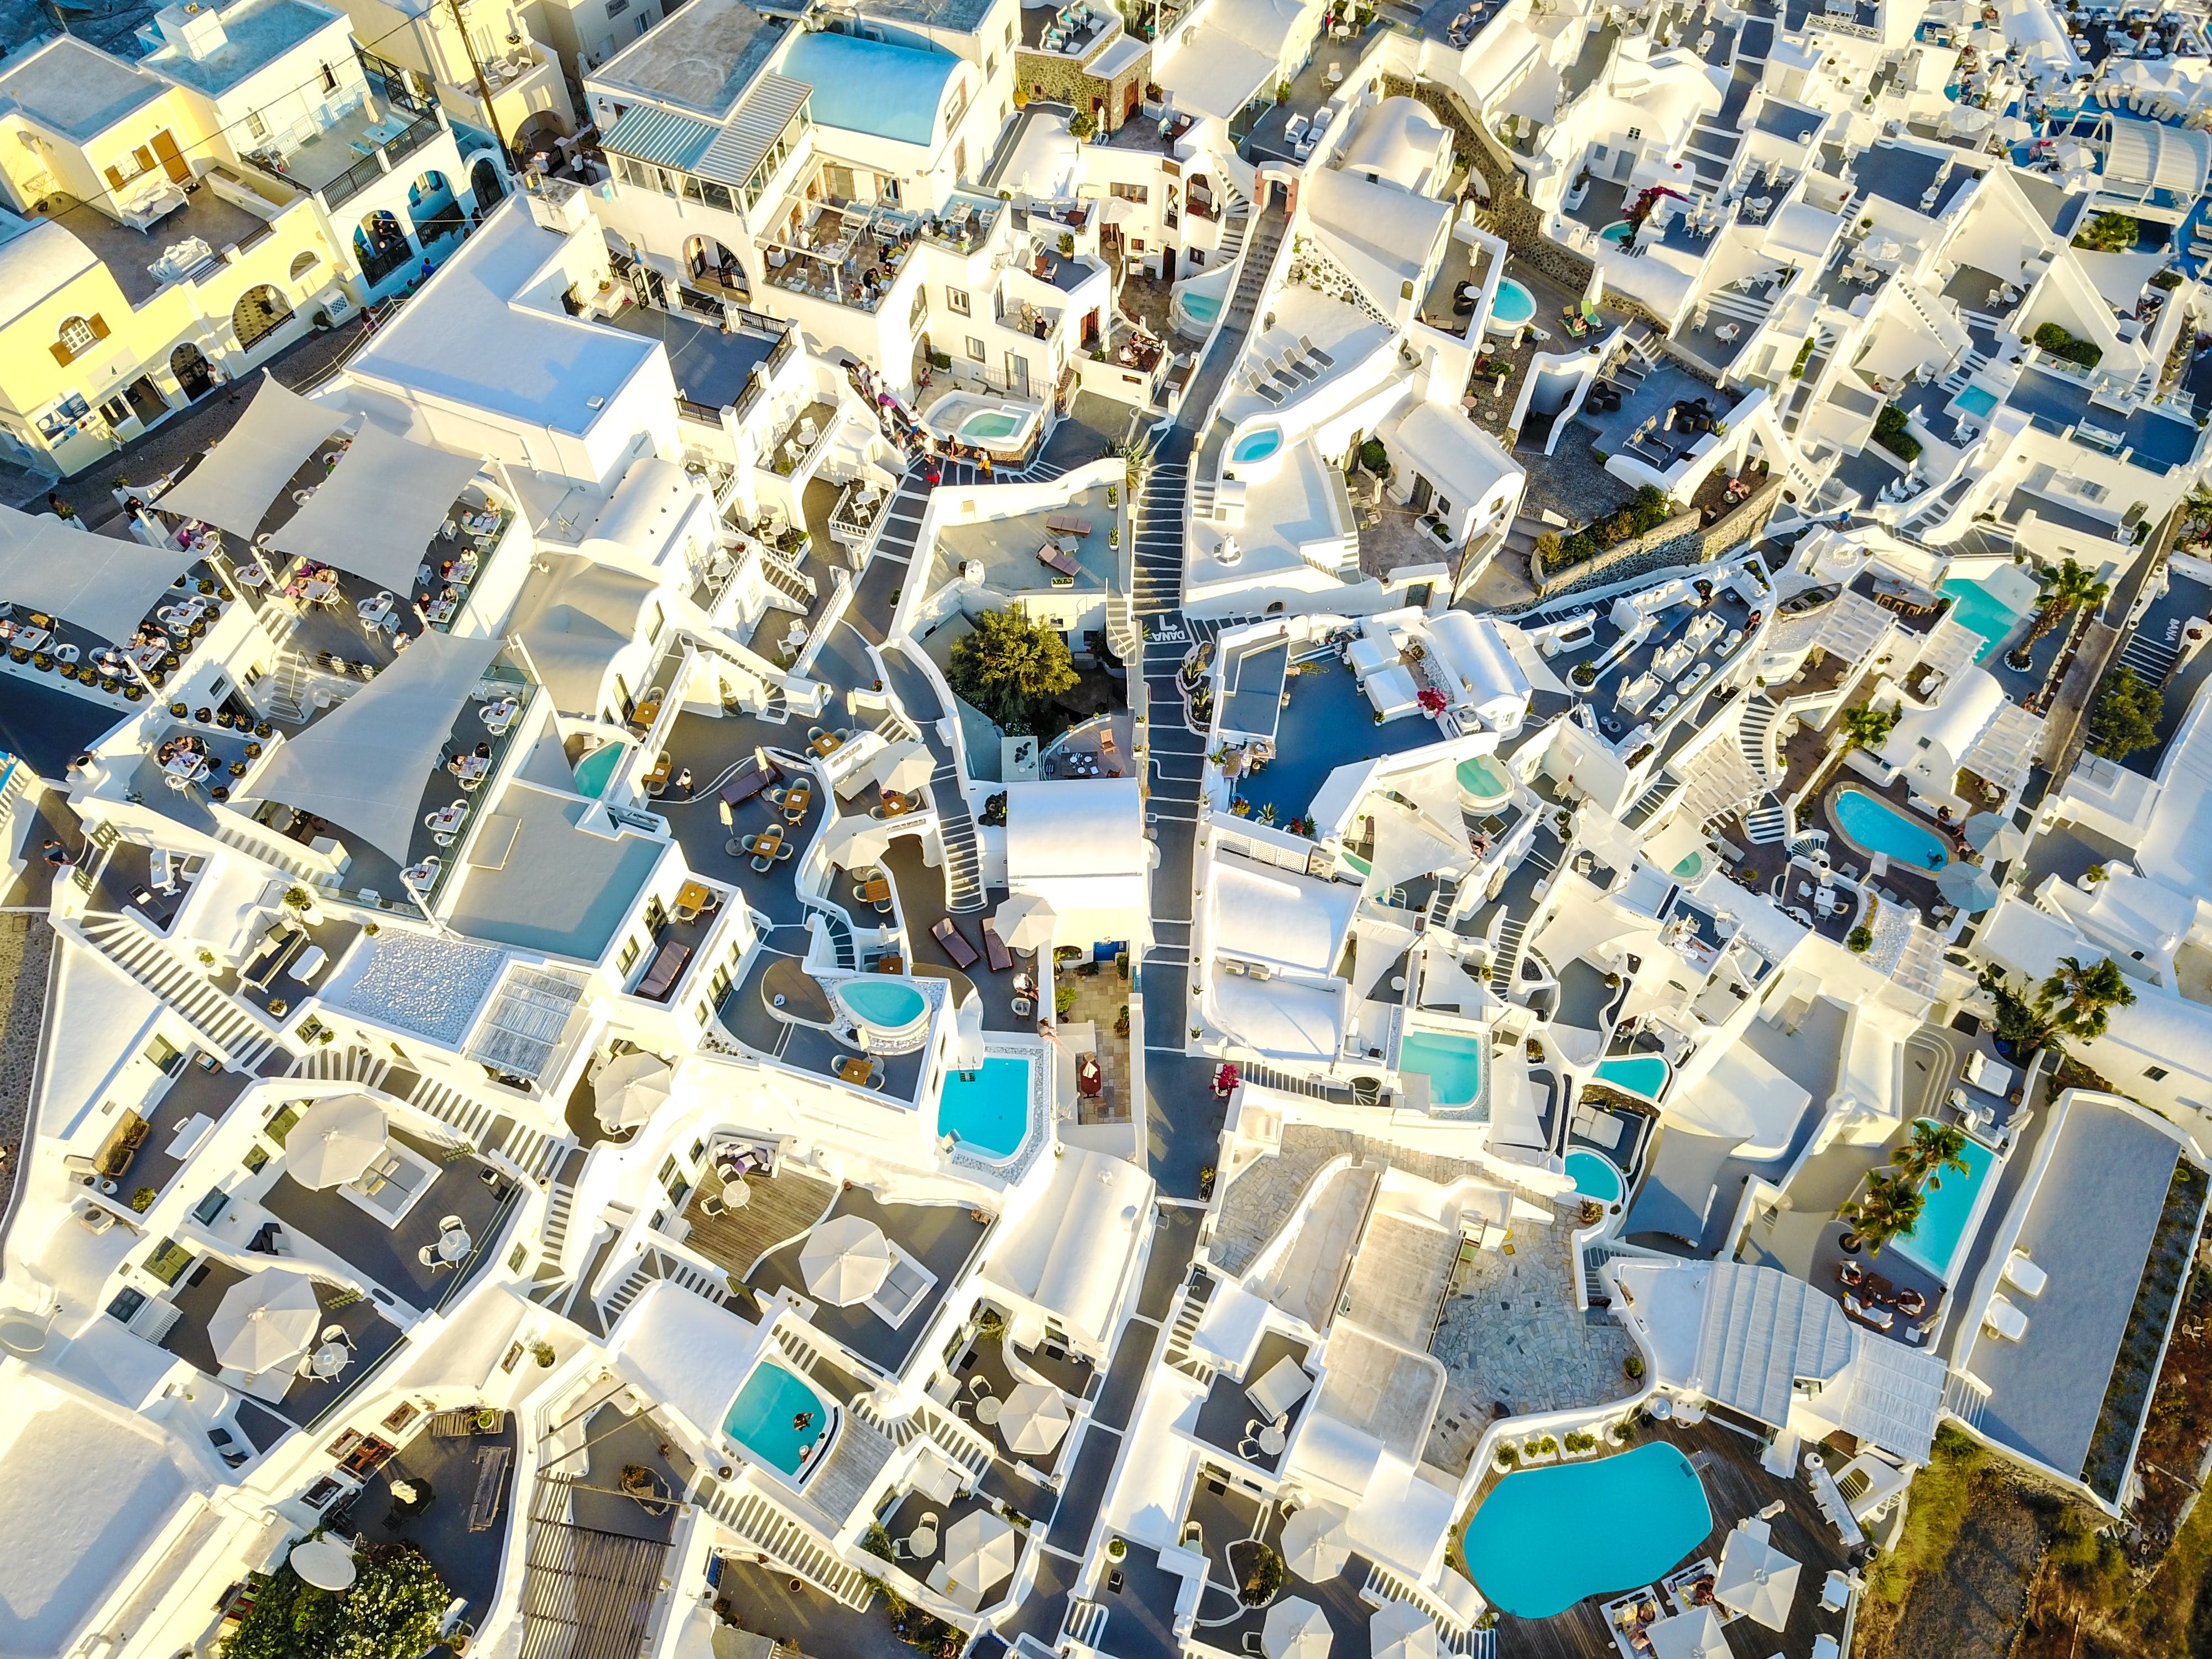 Aerial Photography of City Buildings With Swimming Pools